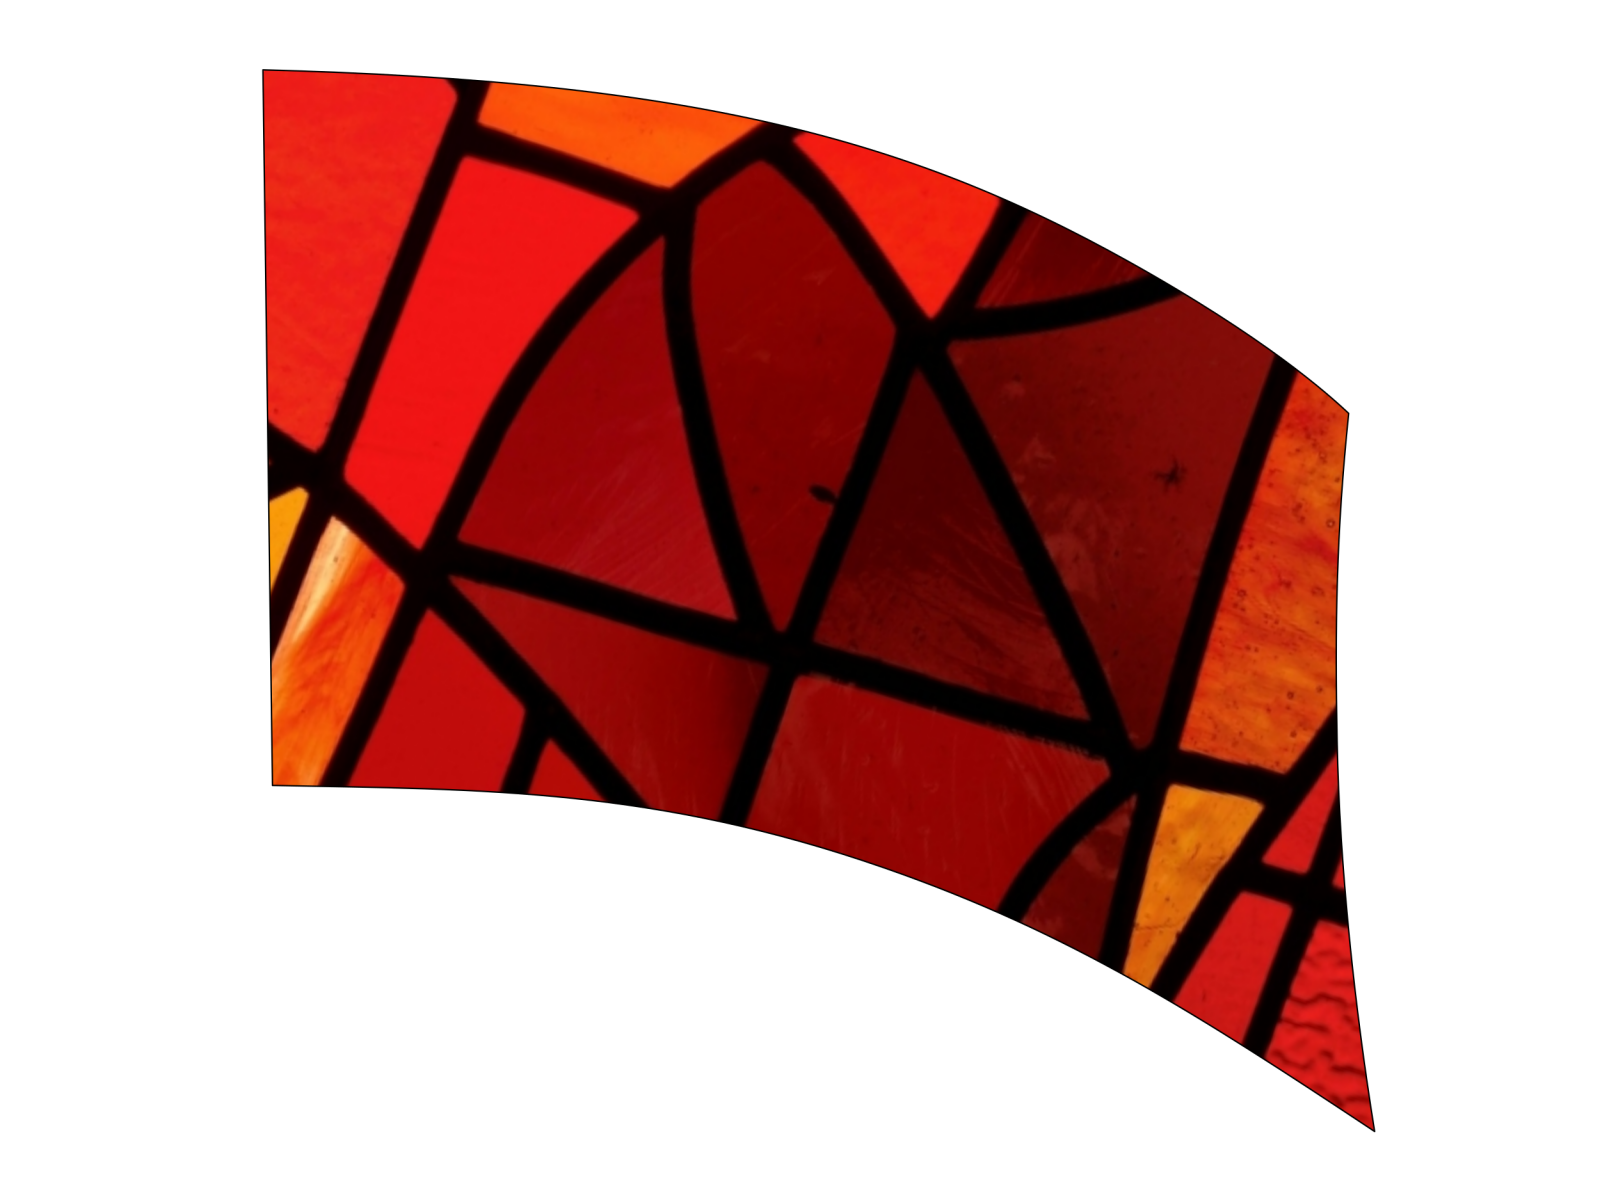 020205s - 36x54 Standard Stained Glass 3